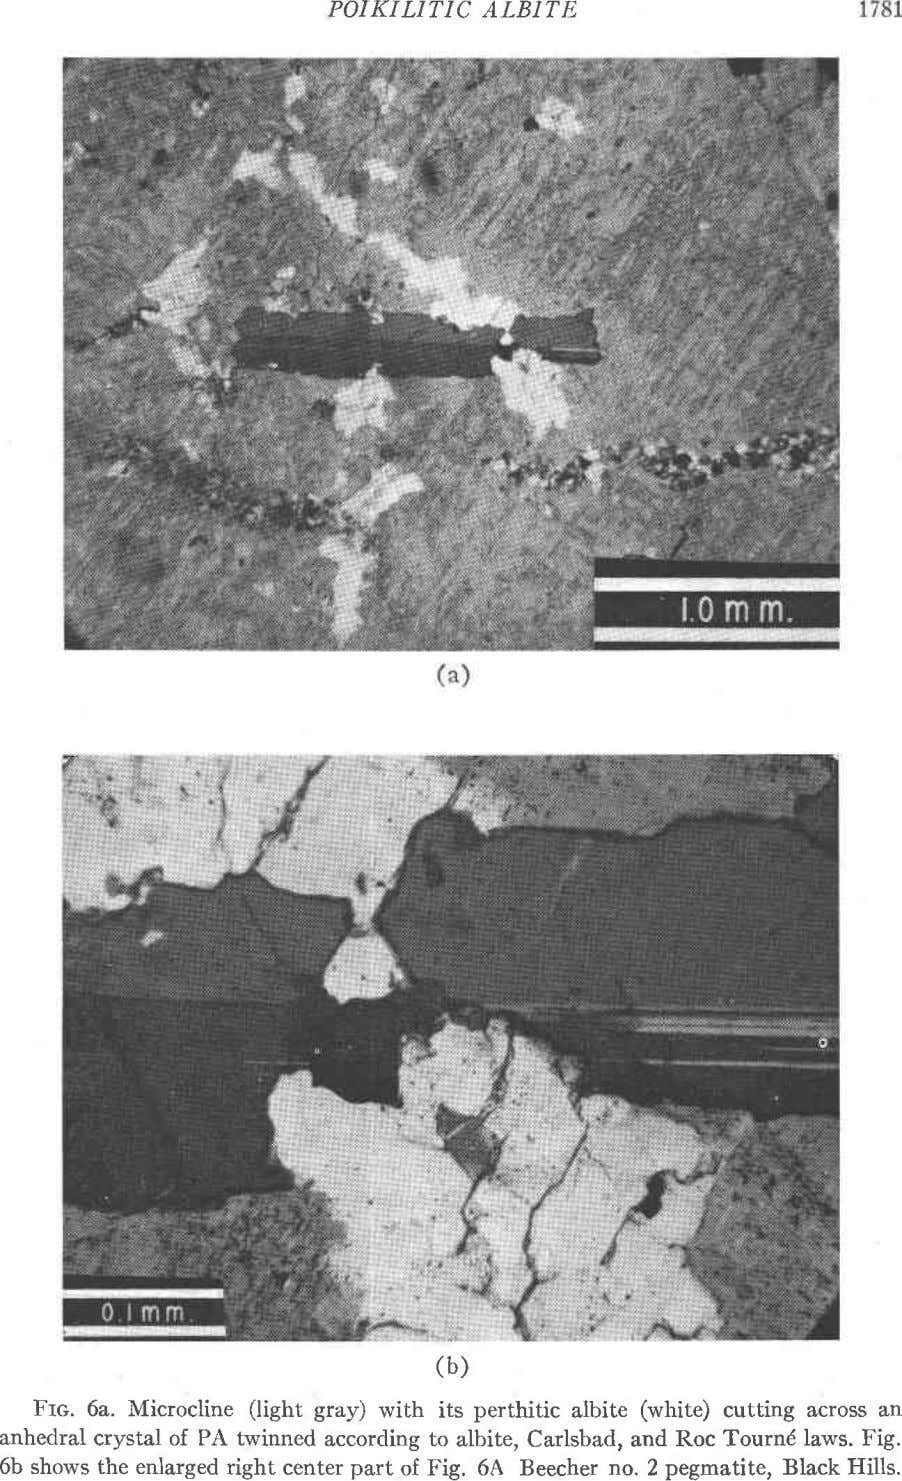 POIKILITIC ALBITE (b) Frc. 6a. Microcline (light gray) with its perthitic albite (white) cutting across